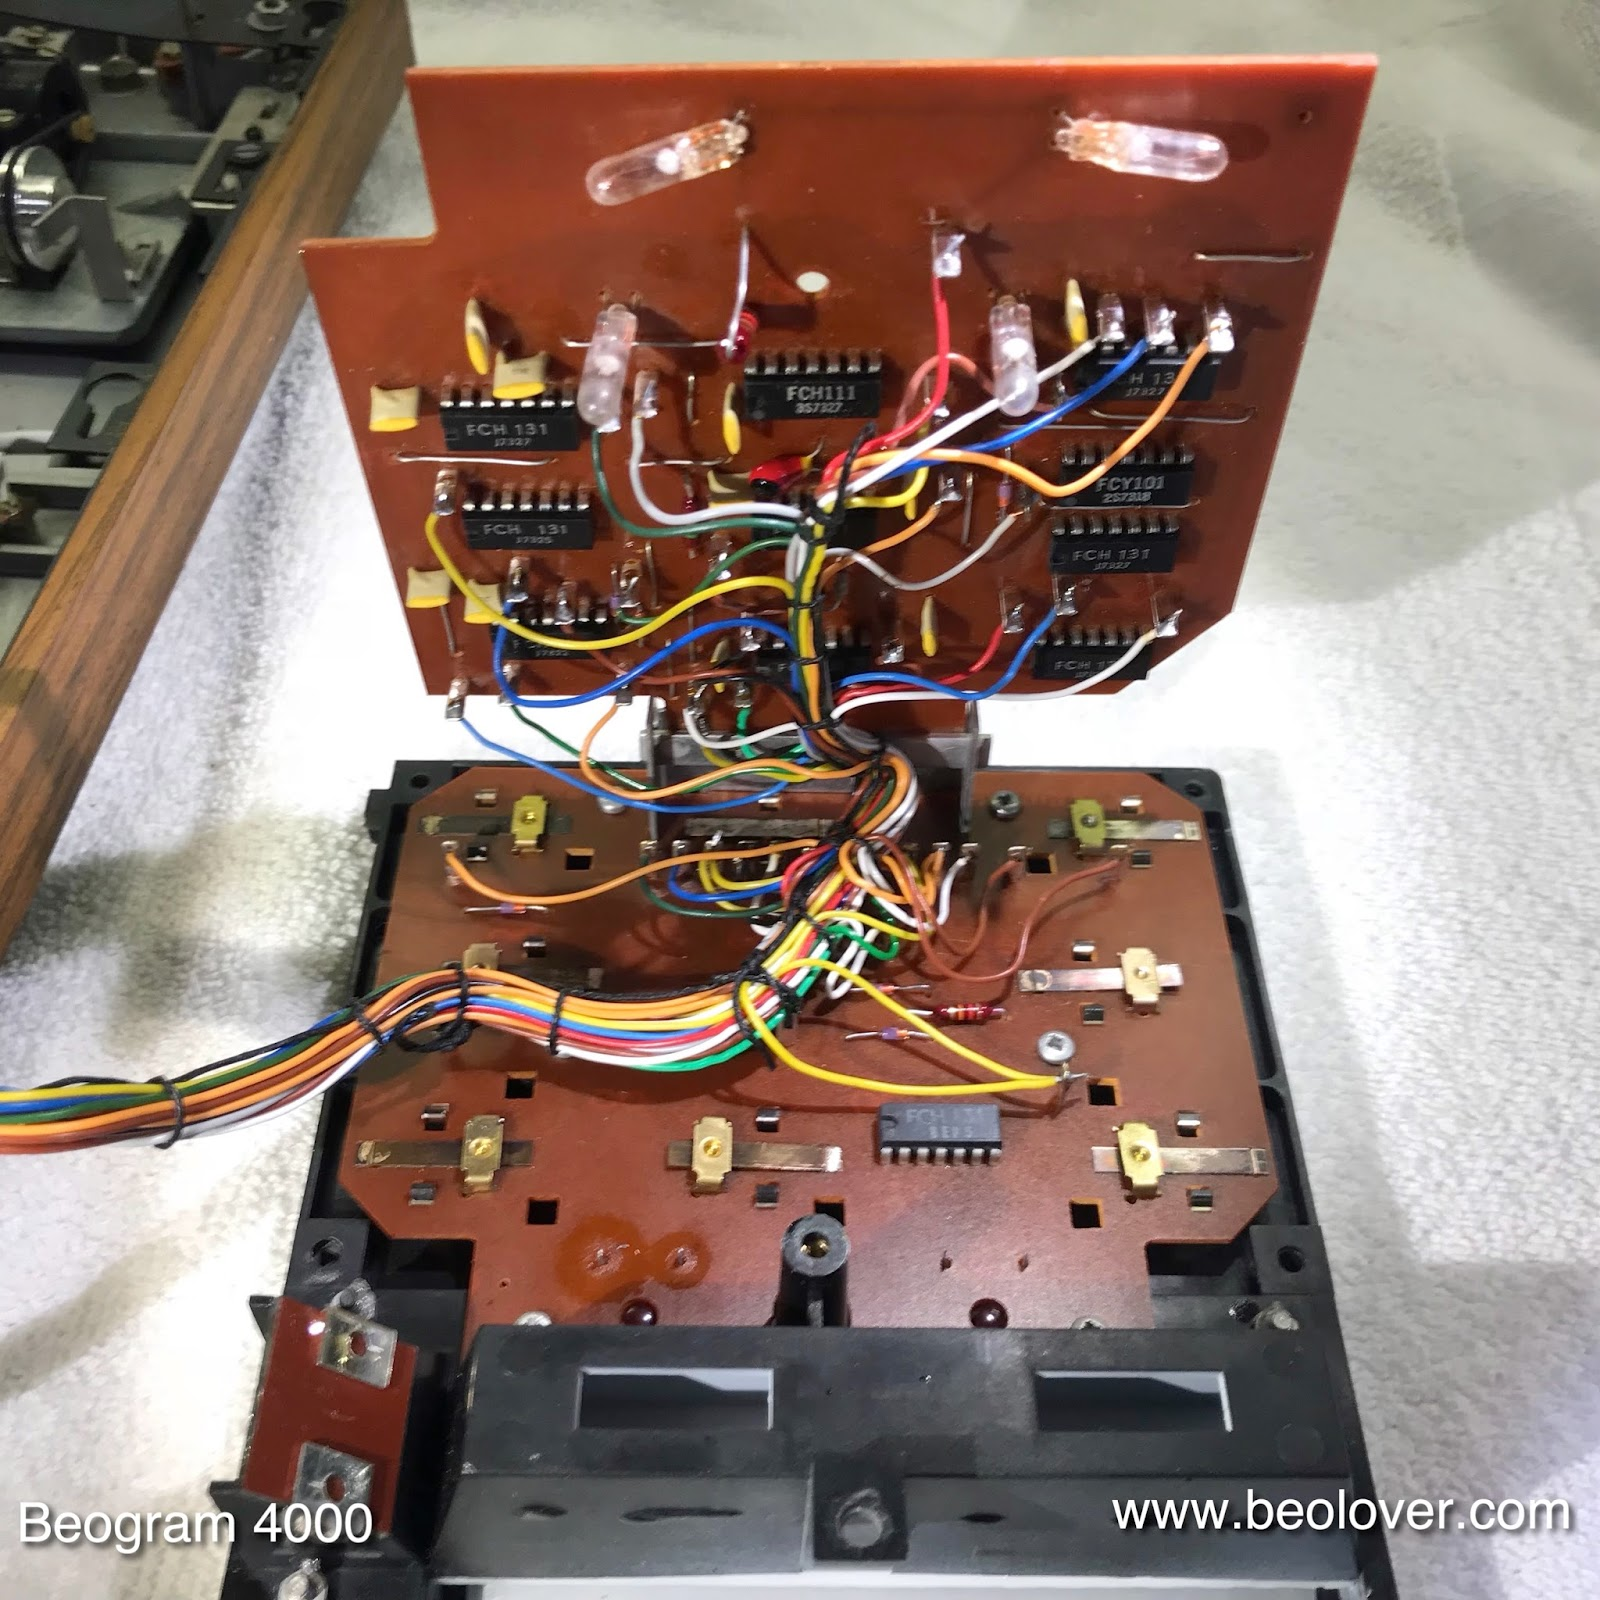 Beolover Beogram 4000 Restoration Of The Keypad Cluster Pics Photos Electronic Circuit Board Showing Wires And Microchips Upper Contains Some Logic Chips Light Bulbs That Illuminate Position Indicator Rpm Trimmers Lower Pcb Is Populated